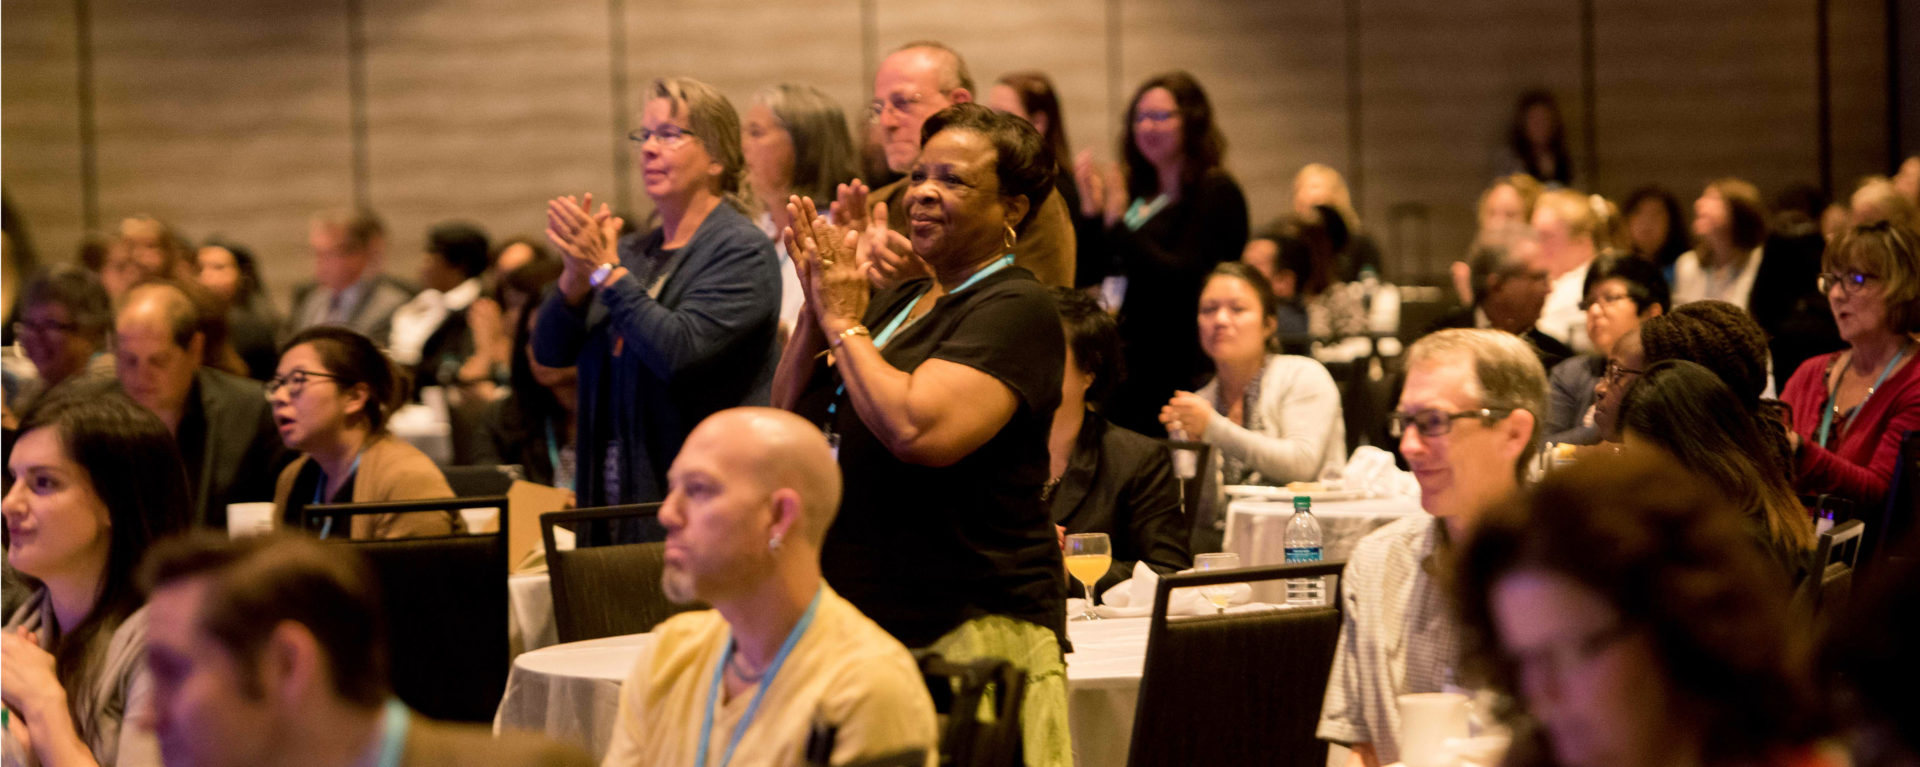 Attendees give a standing ovation at Putting Care at the Center 2017